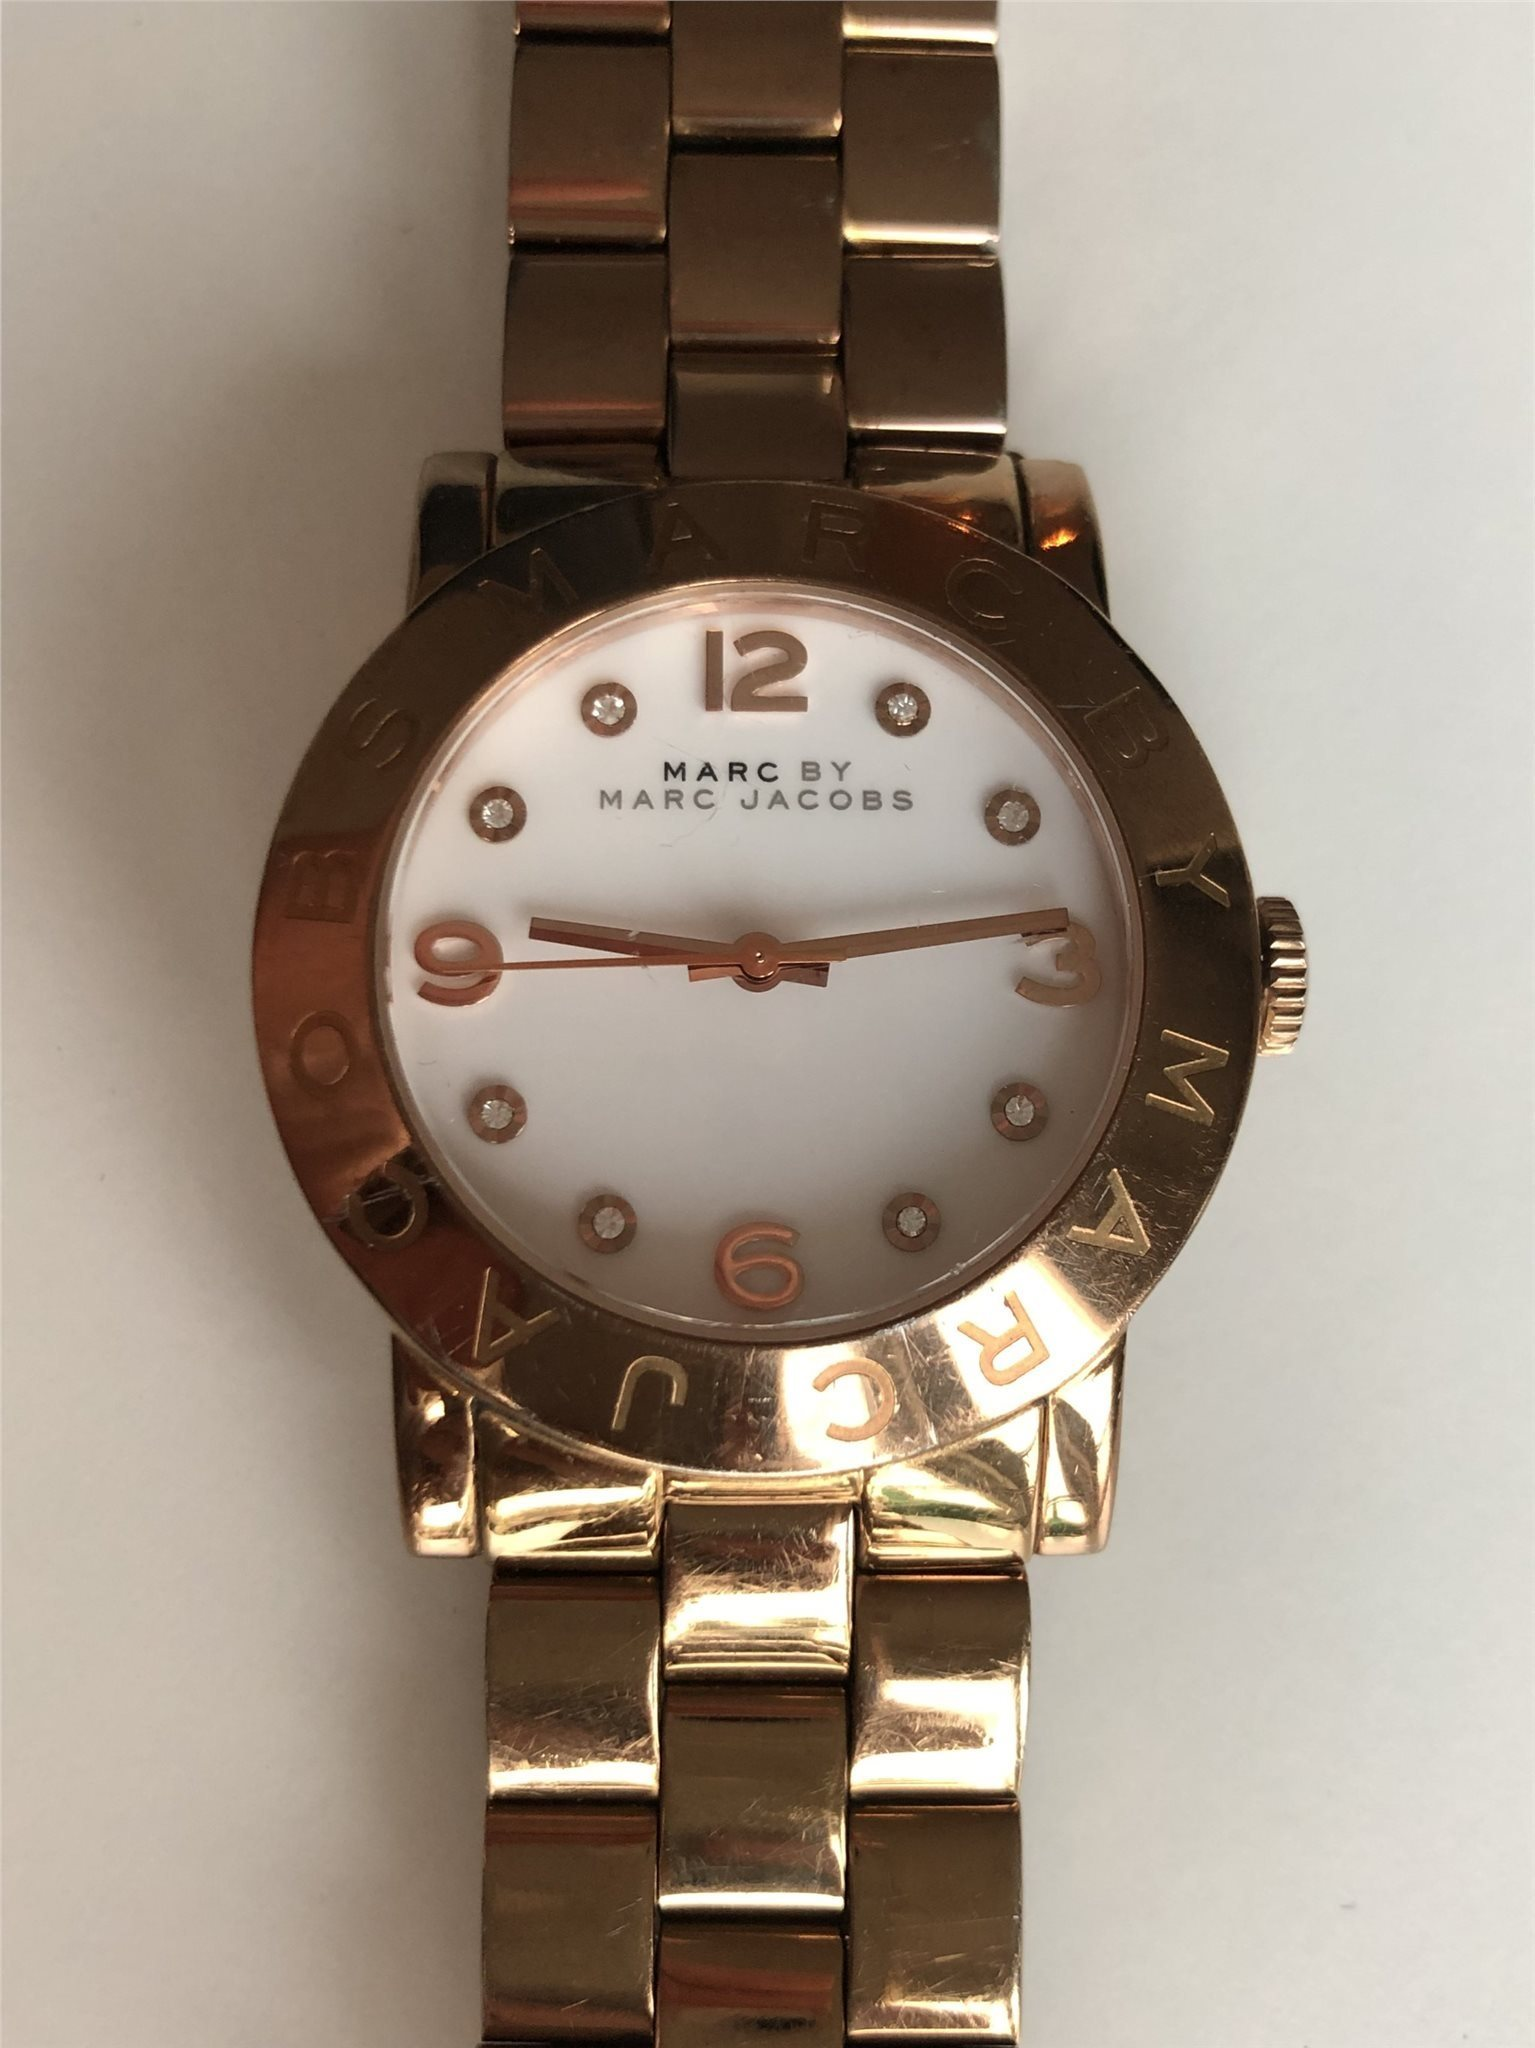 MARC BY MARC JACOBS damklocka i roseguld Ø36mm .. (342239821) ᐈ Köp ... 91f8dd5679c0a